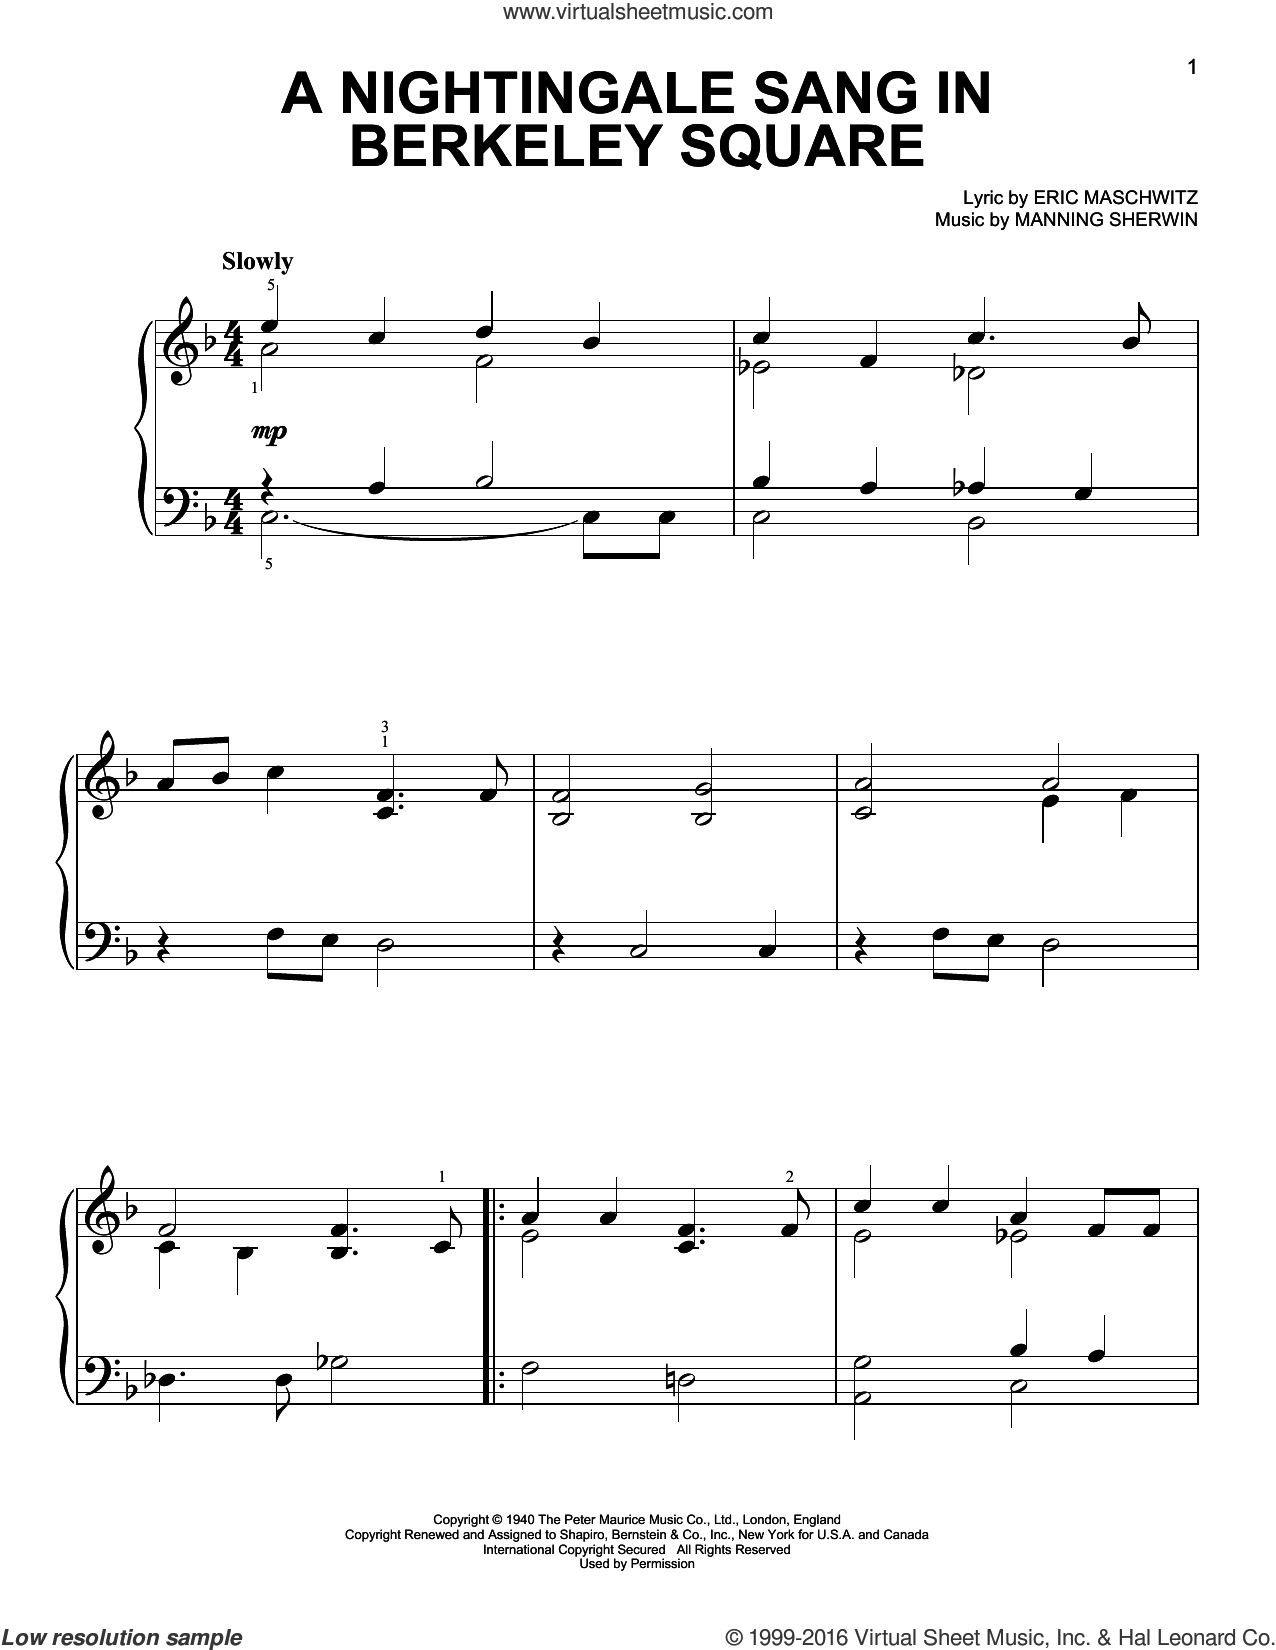 A Nightingale Sang In Berkeley Square sheet music for piano solo by Manning Sherwin and Manhattan Transfer. Score Image Preview.